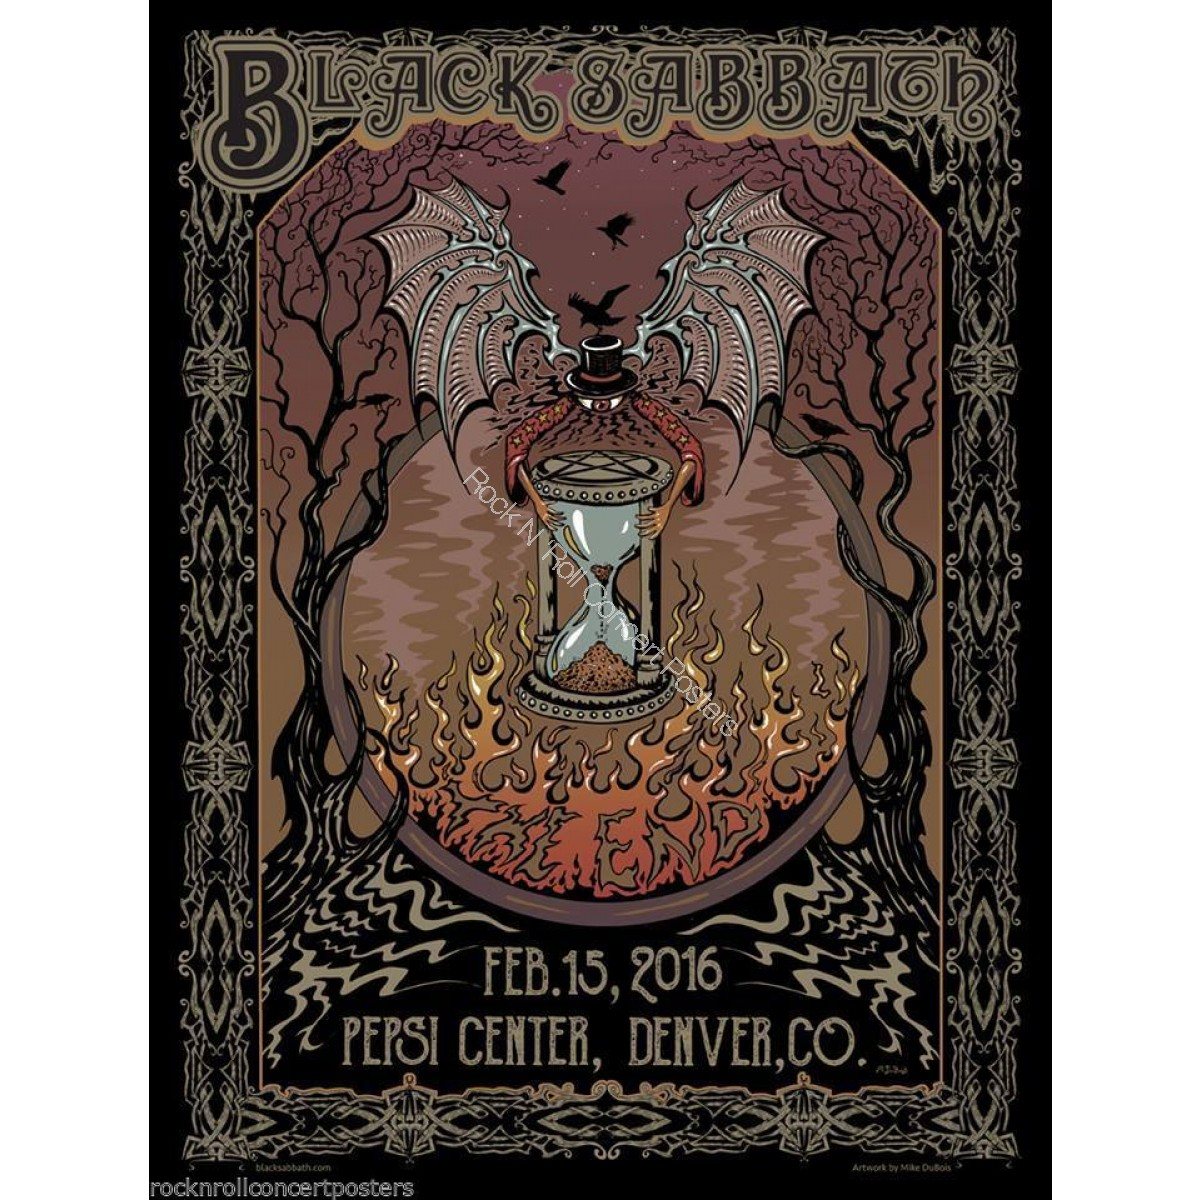 BLACK SABBATH DENVER 2/15/16 LIMITED EDITION HAND NUMBERED SCREEN PRINT CONCERT POSTER MINT BY MIKE DUBOIS